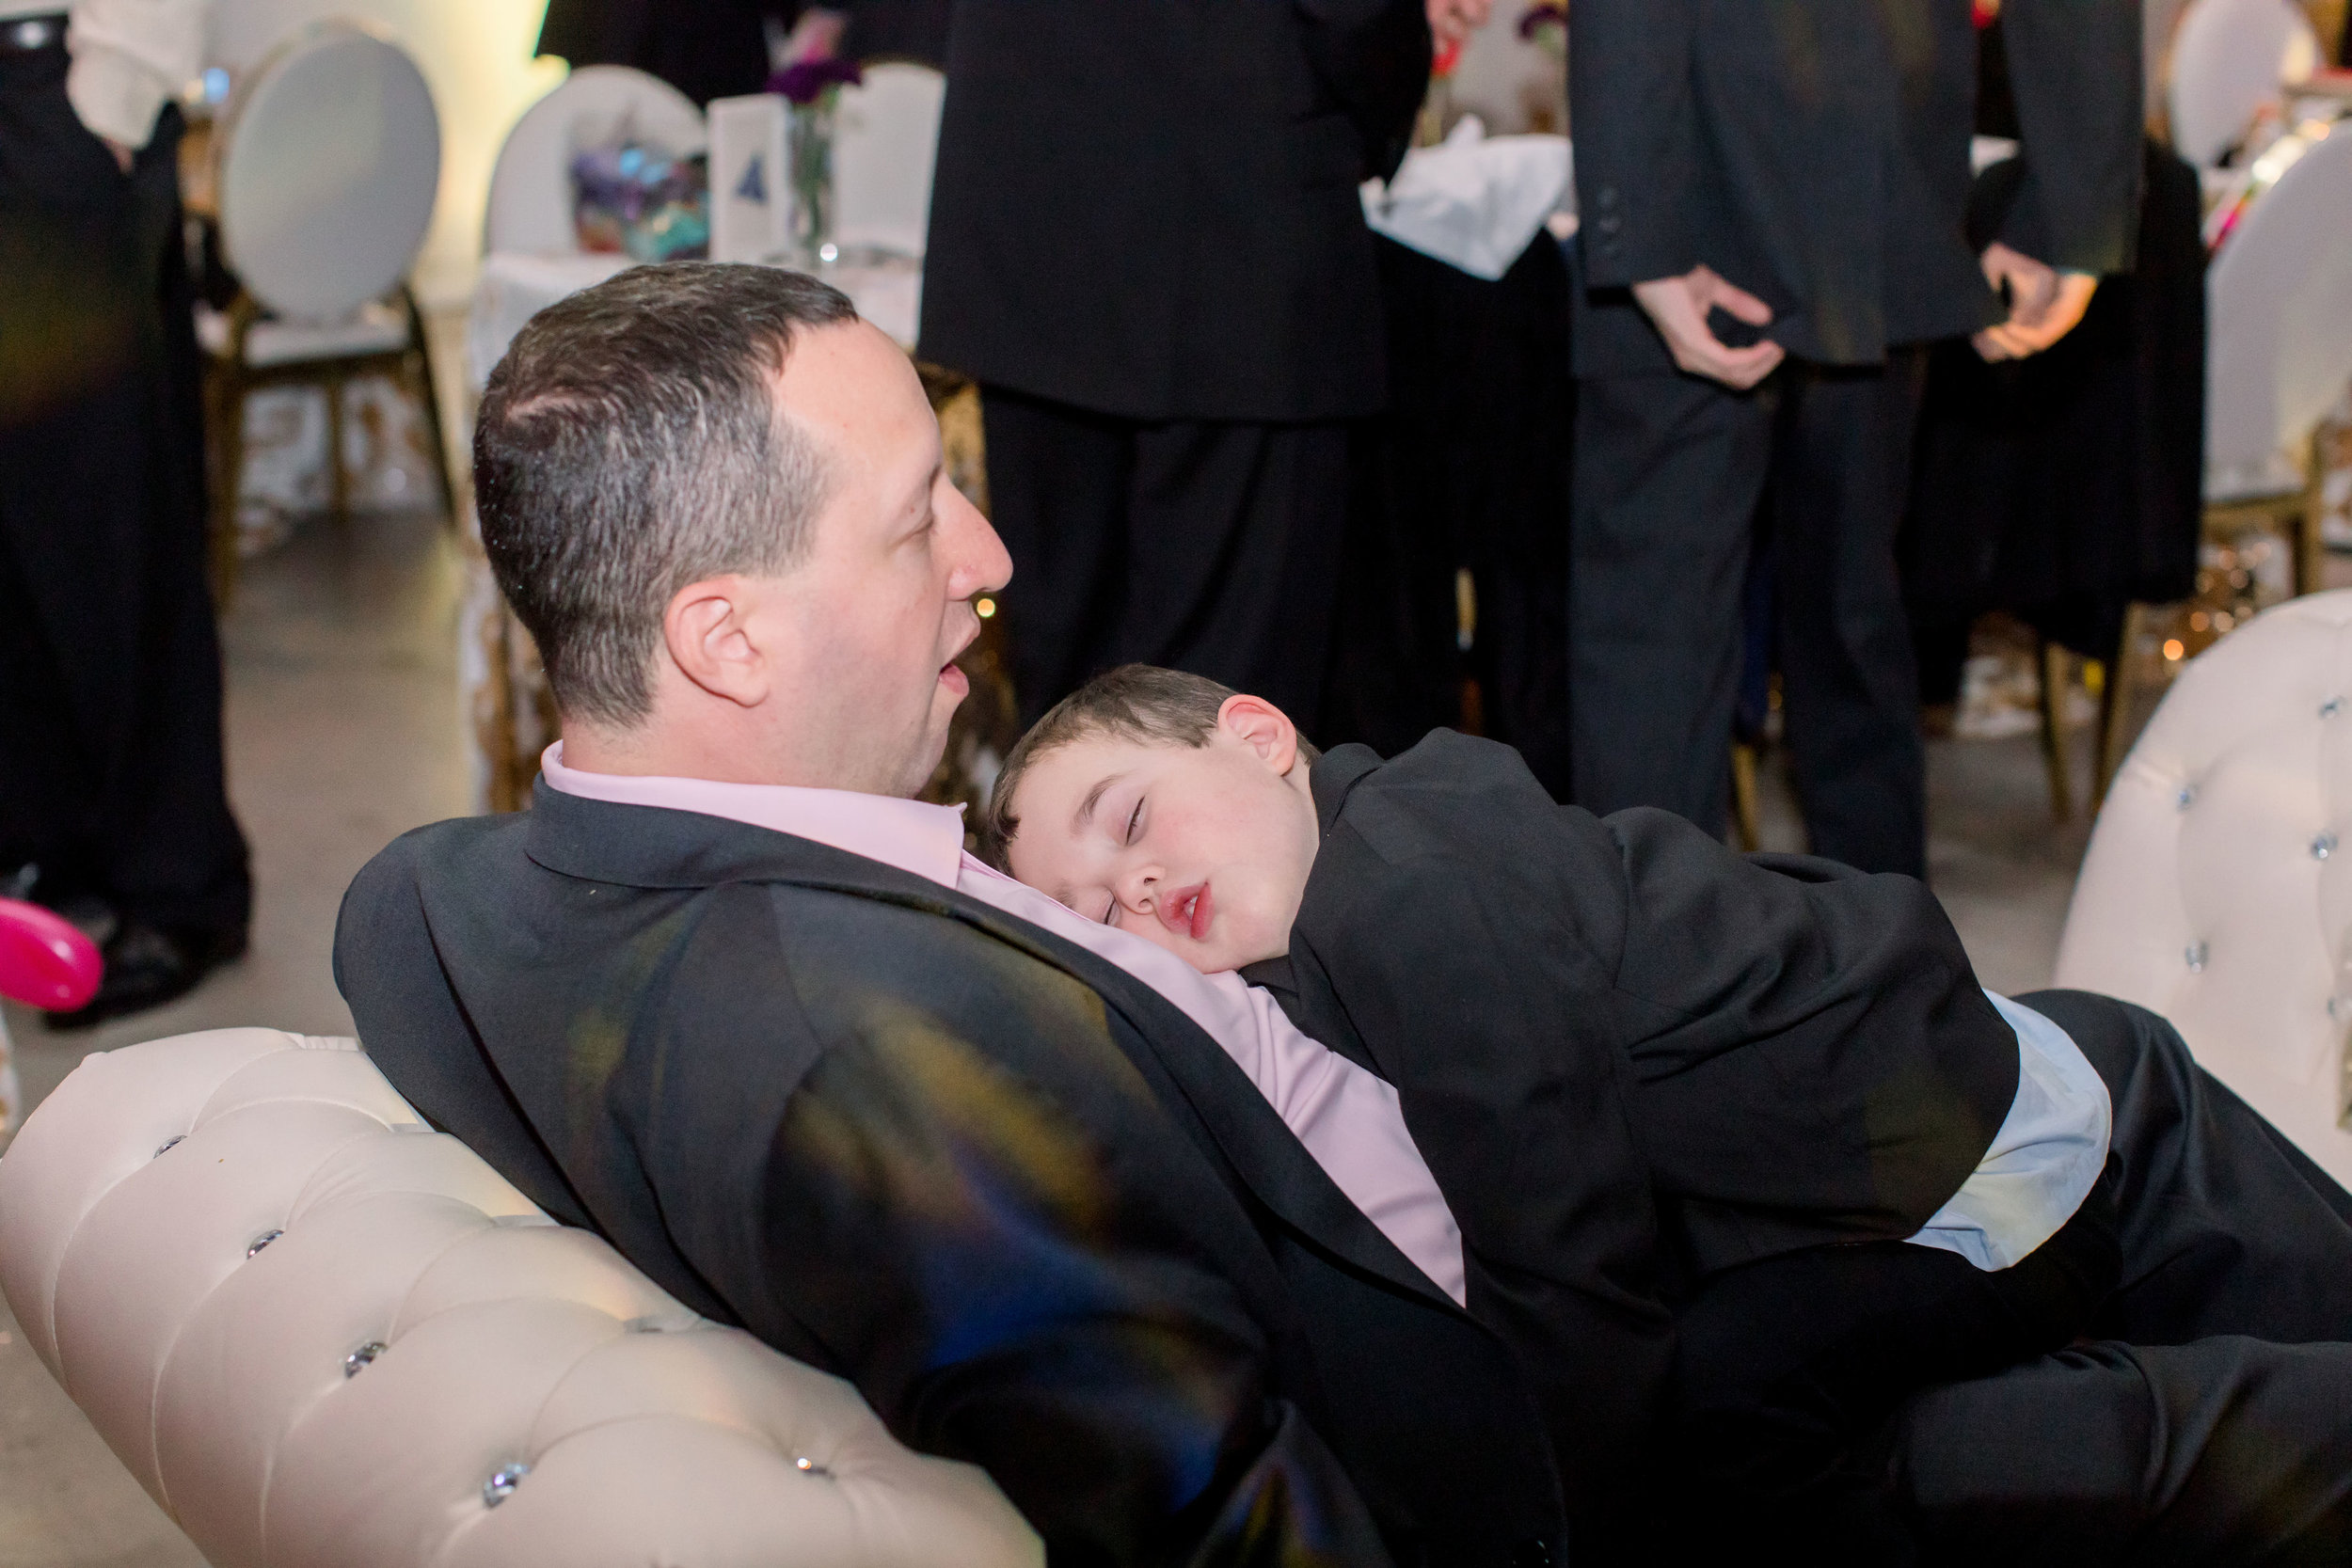 62 rainbow bat mitzvah tired party guest fell asleep at party tired party boy Life Design Events photos by Stephanie Heymann Photography.jpg